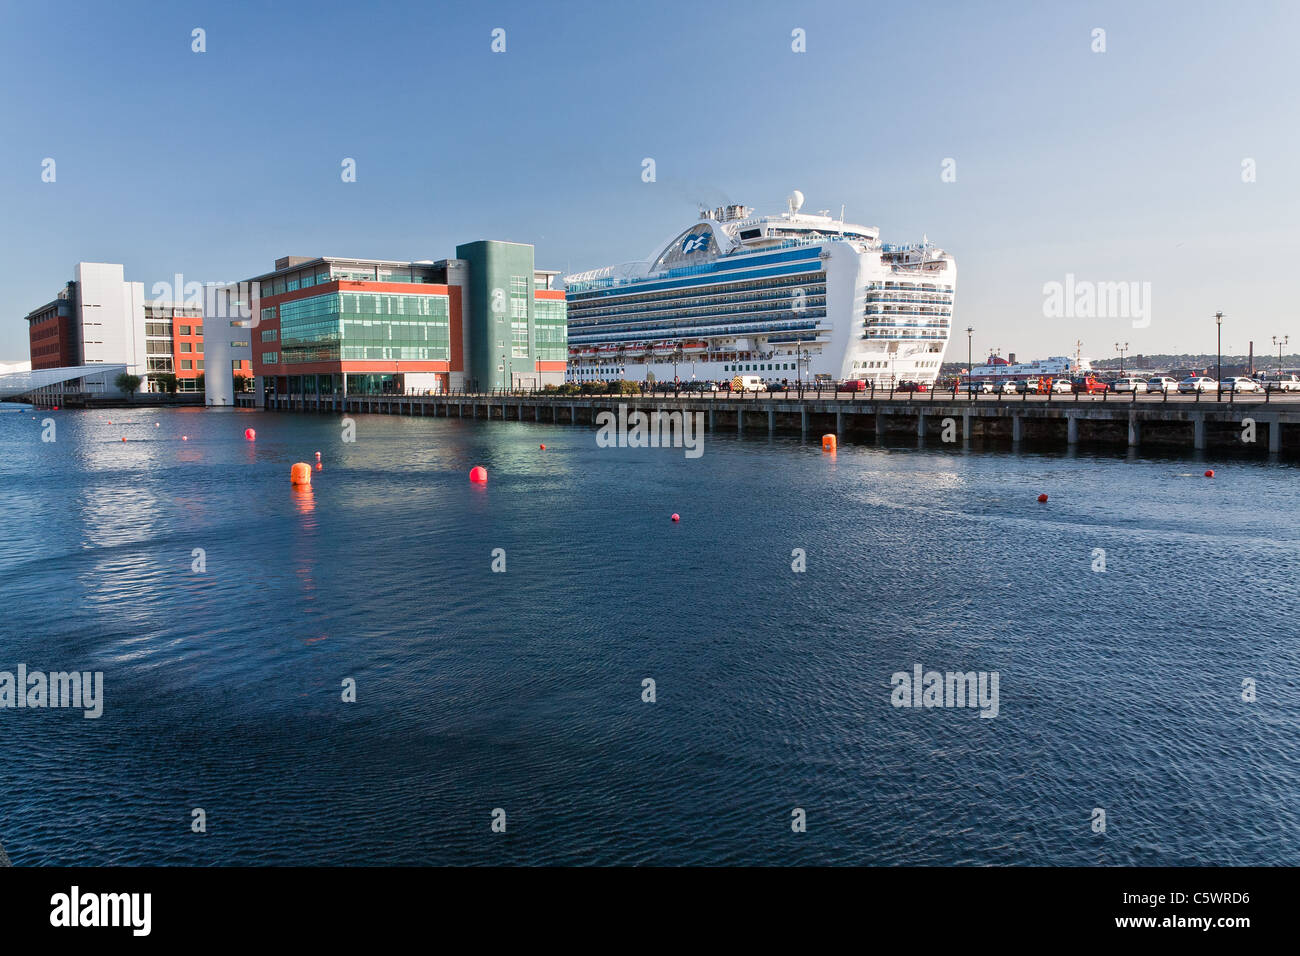 A 116,000 ton Passenger cruise ship docked at Liverpool Pier Head in summer - Stock Image